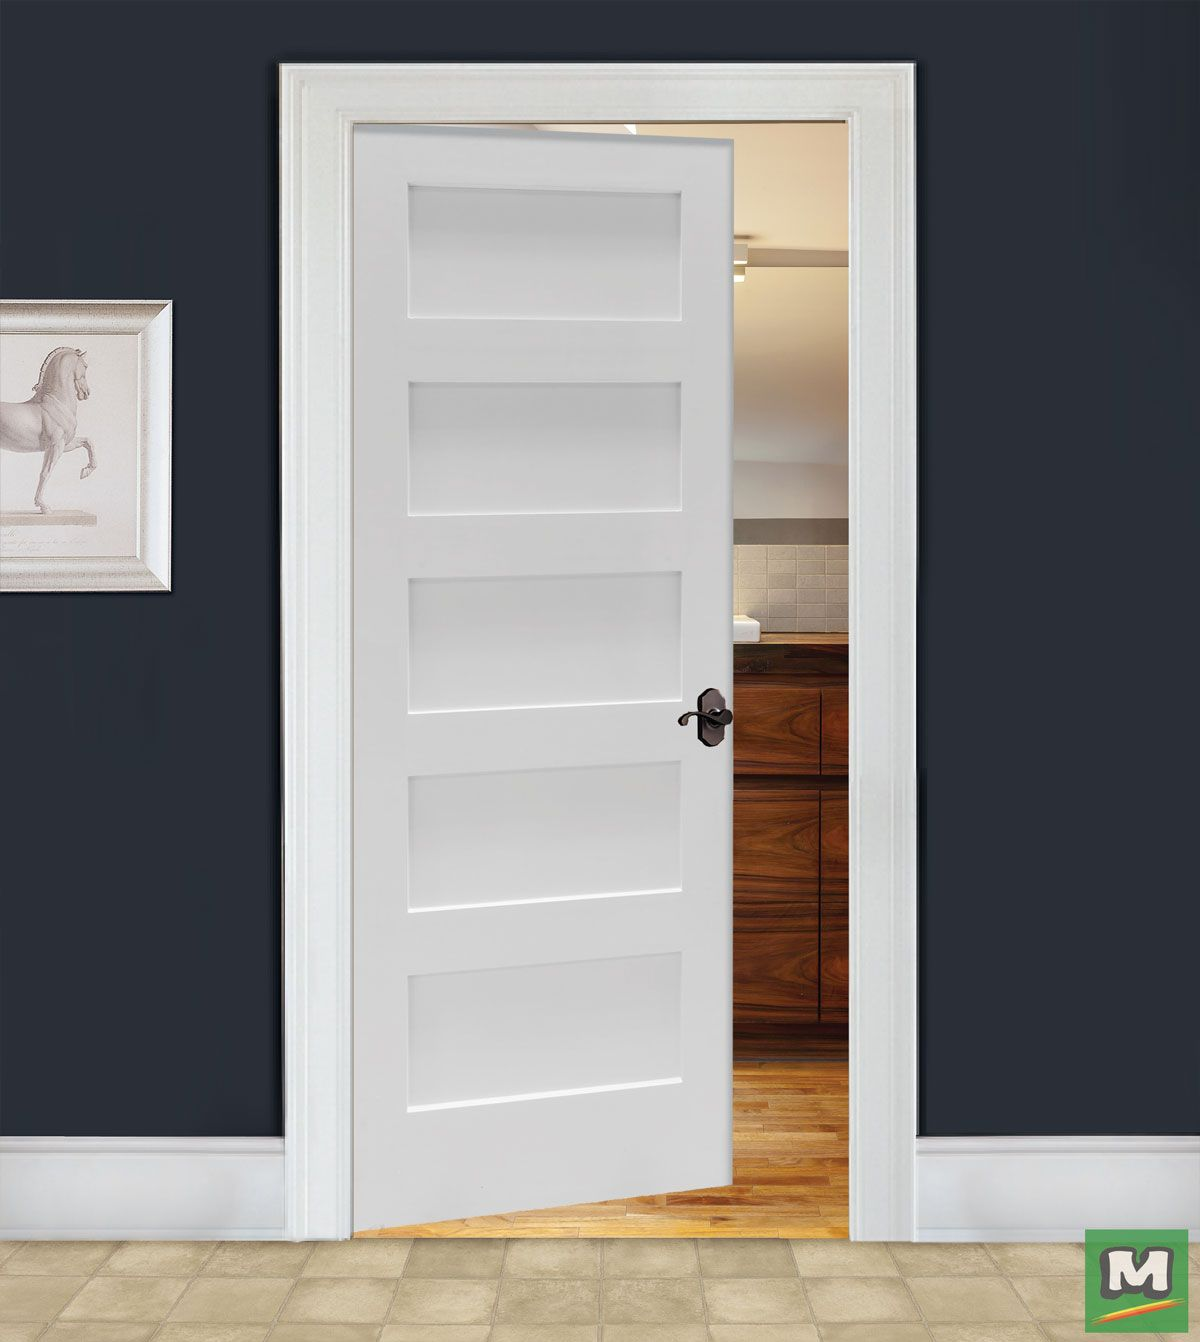 The Five Panel Door From Mastercraft Will Suit Any Entryway In